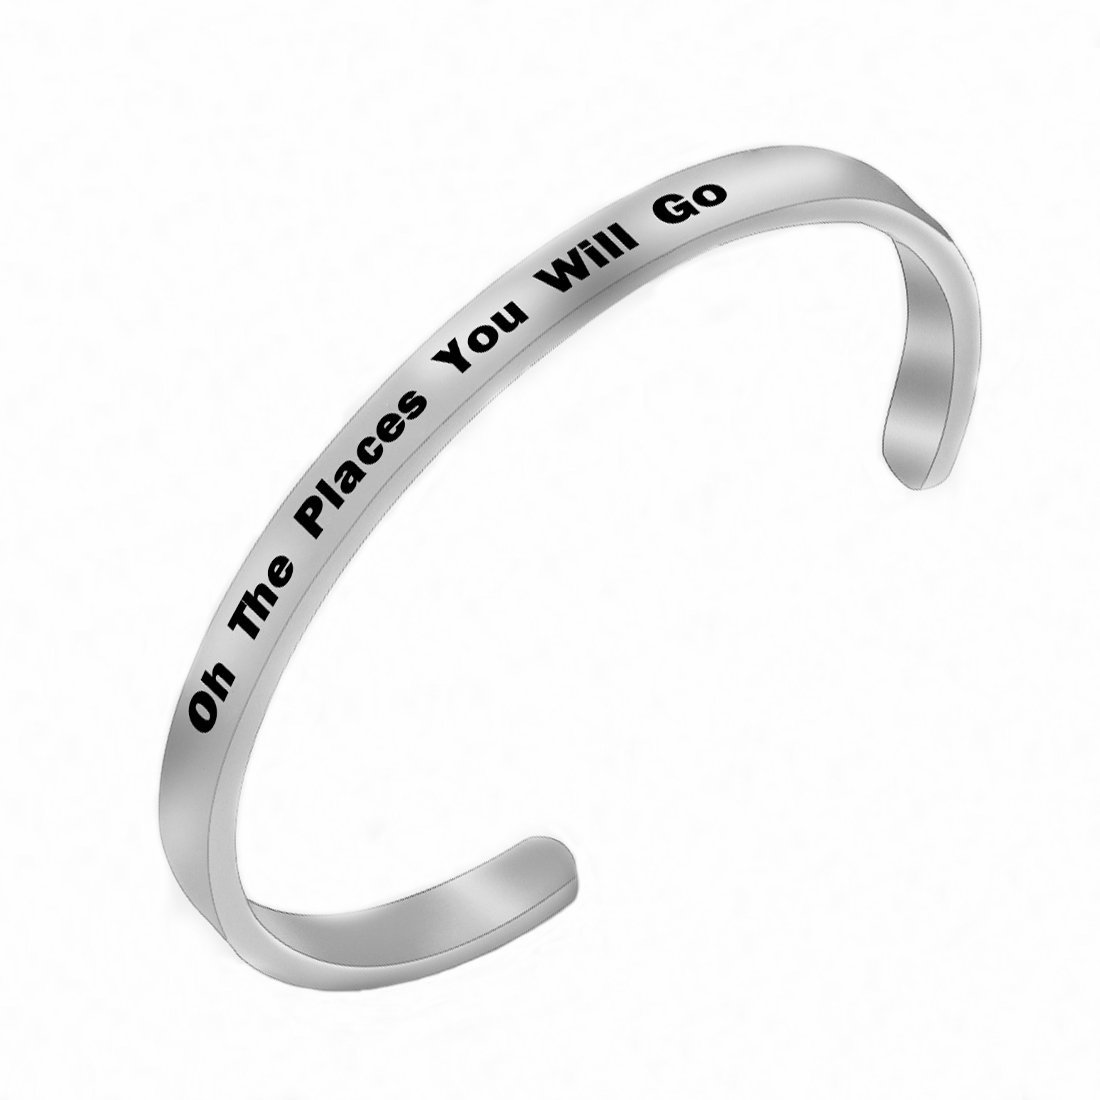 RUNXINTD Graduation Gift,Inspirational Bracelet Oh the places you will go, Travel Gifts Gift for Graduation of High School,Graduation of College (Cuff Bracelet-Silver)